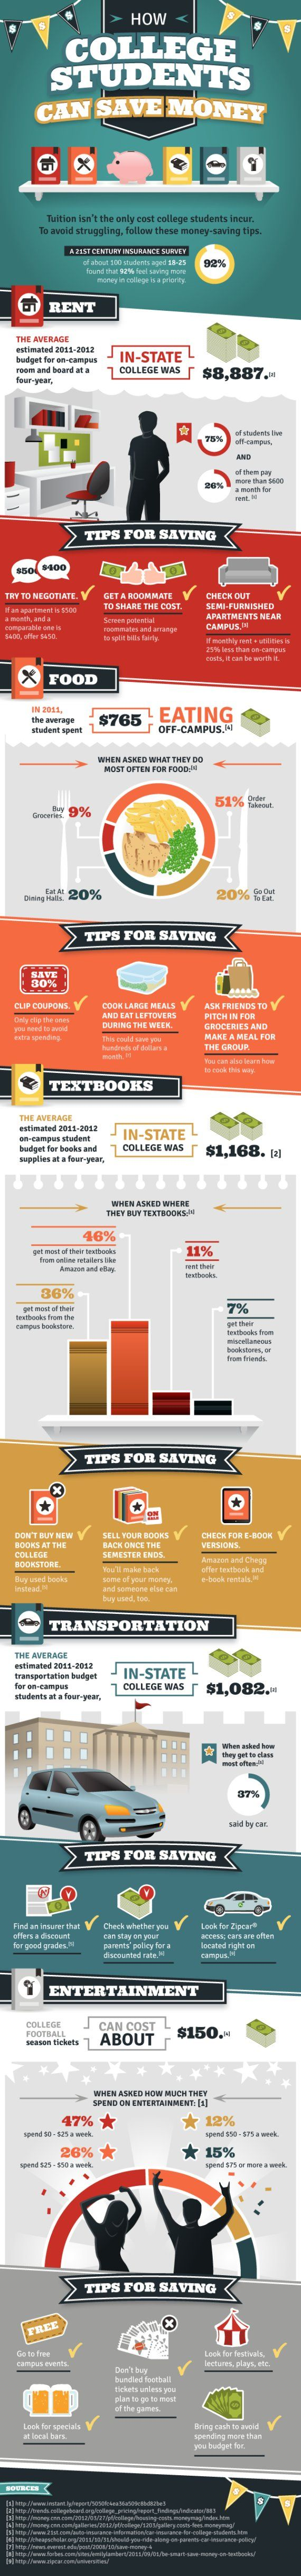 Do you spend more than a thousand bucks just getting to class every year? Have you spent $765 over the last year eating off campus?